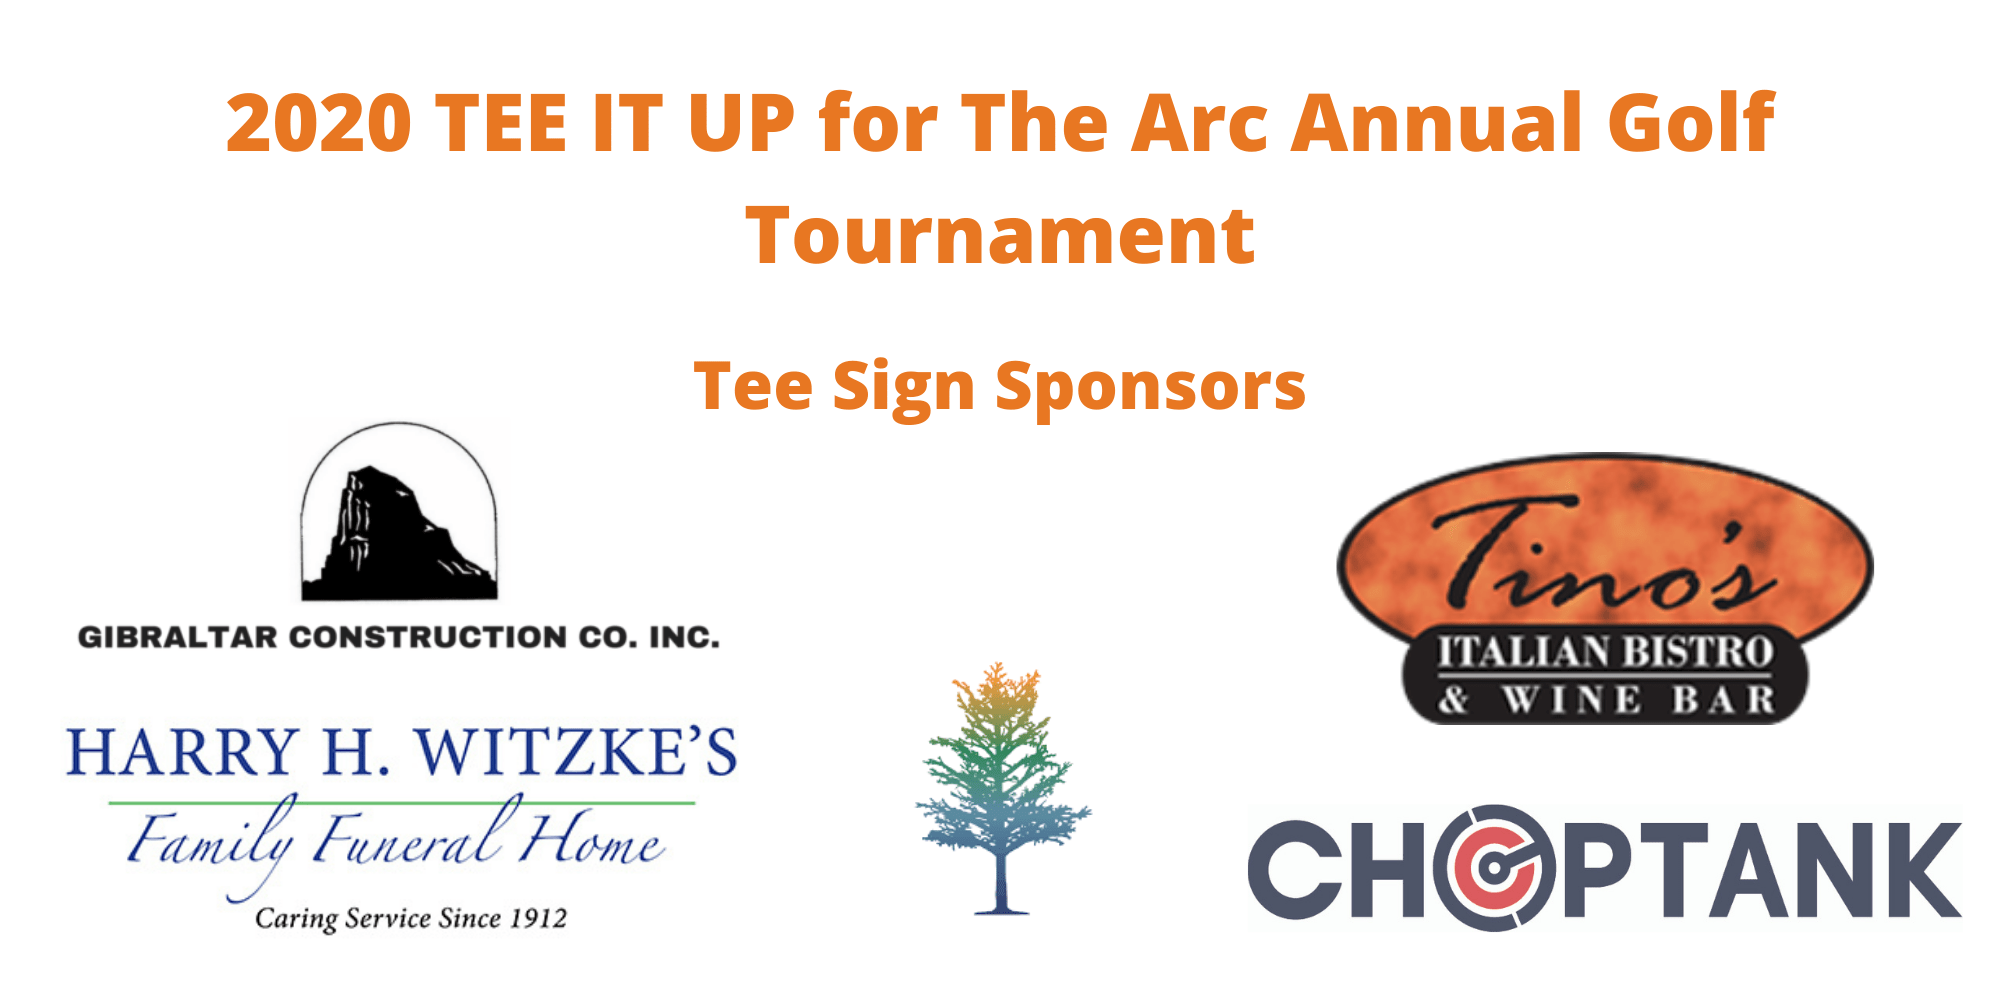 Gibraltar Construction Co. Inc., Harry H. Witzke's Family Funeral Home, Waverly Woods Golf Club, Tino's Italian Bistro & Wine Bar, and Choptank Transport are some of the Tee Sign Sponsors of TEE IT UP for The Arc Annual Golf Tournament